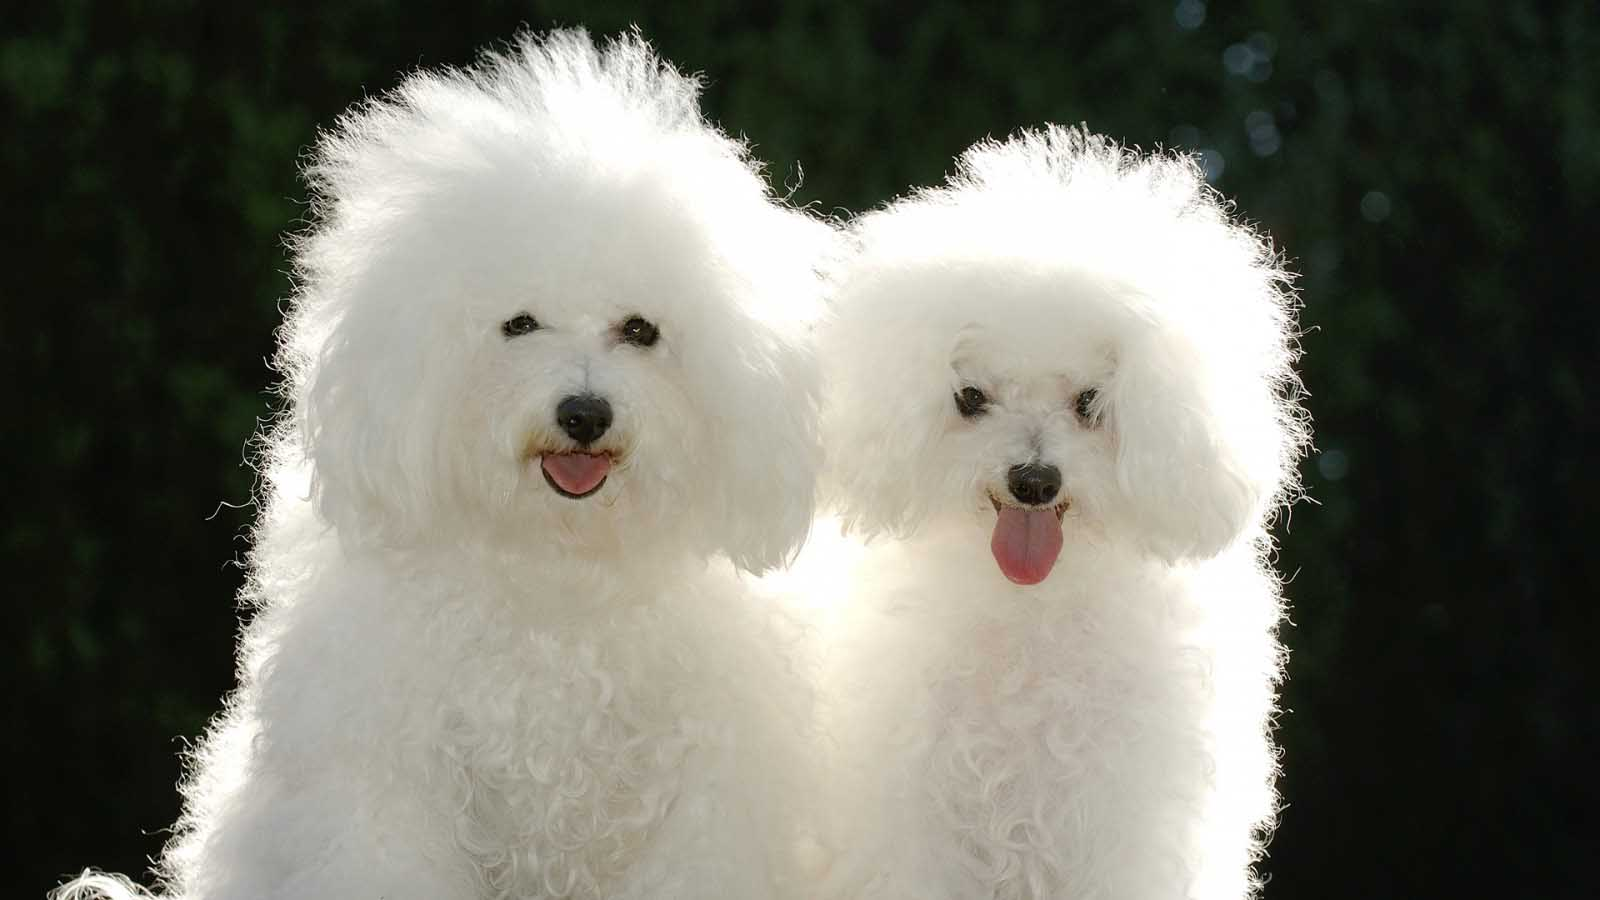 Cute Puppy Couple Wallpapers Unique HD Wallpapers 1600x900